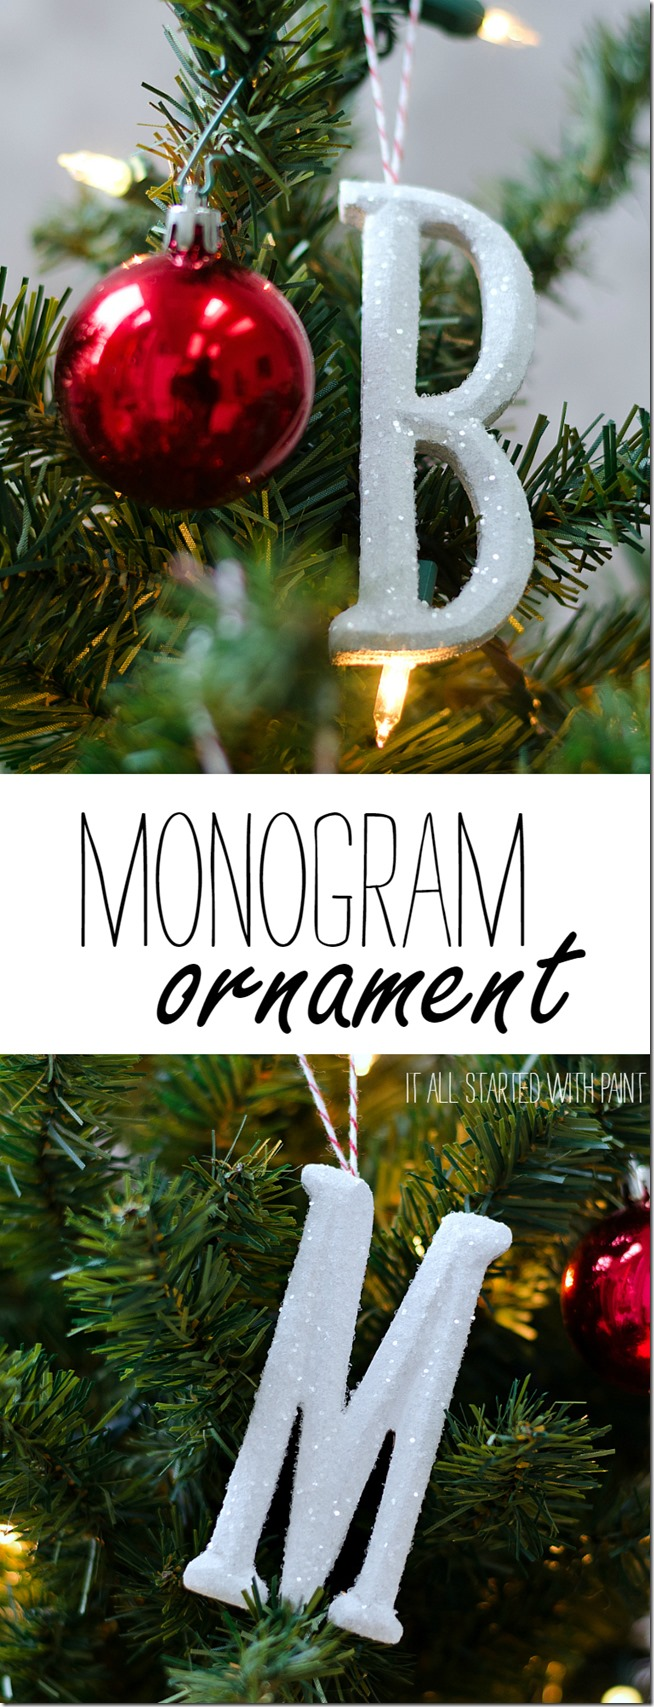 monogram-ornament-christmas-craft-ideas